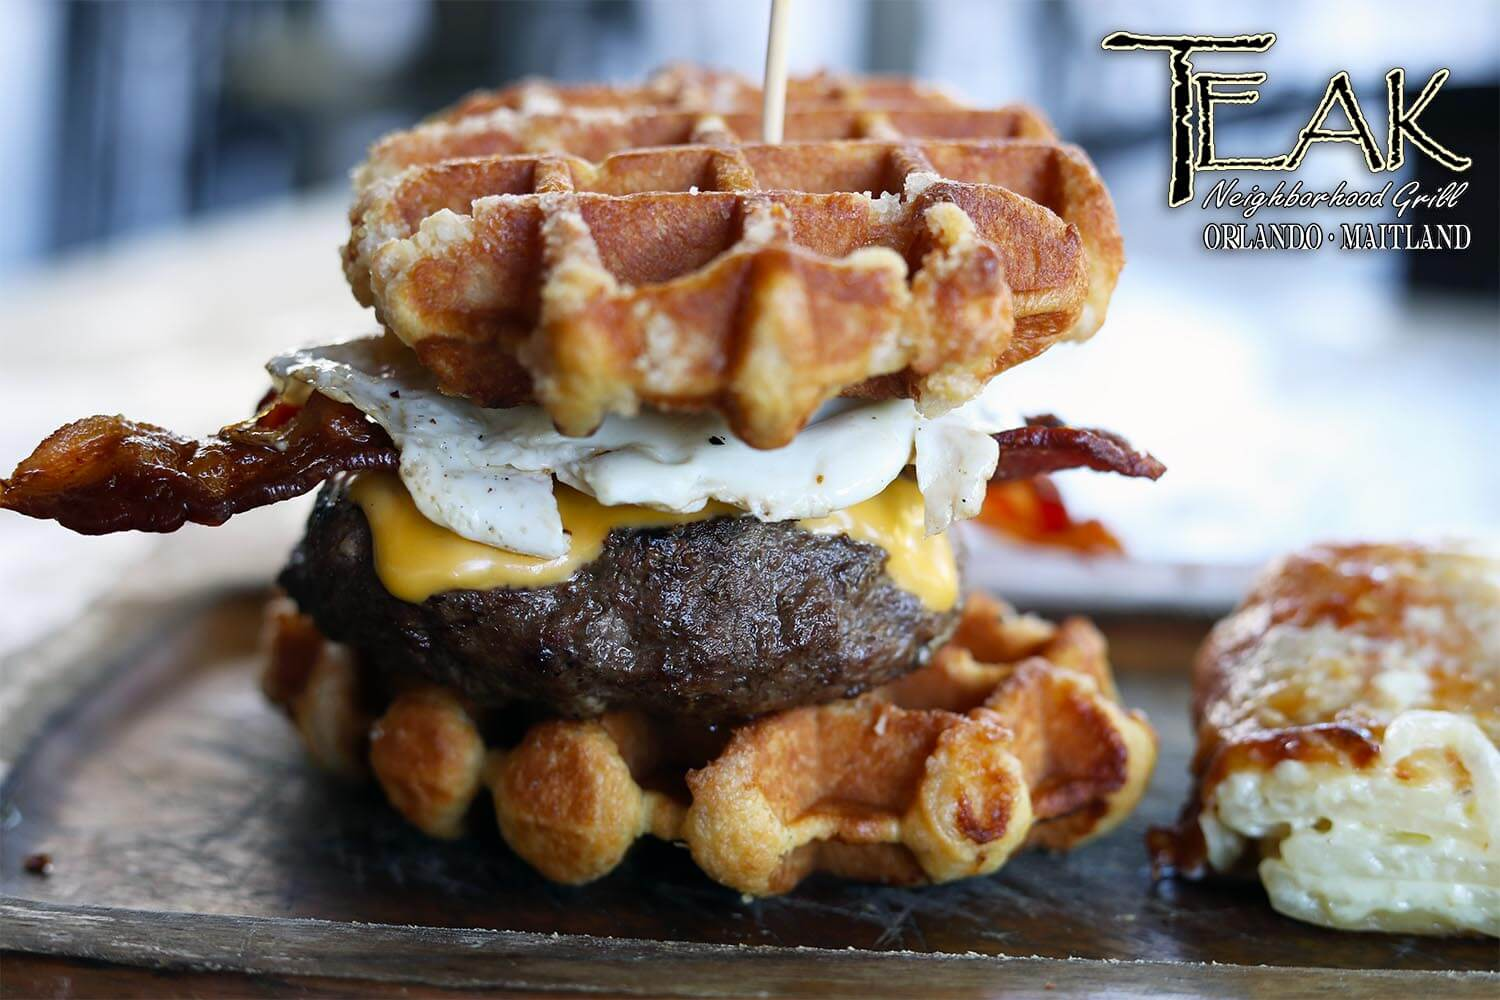 The Waffle Burger with bacon, eggs, and American cheese